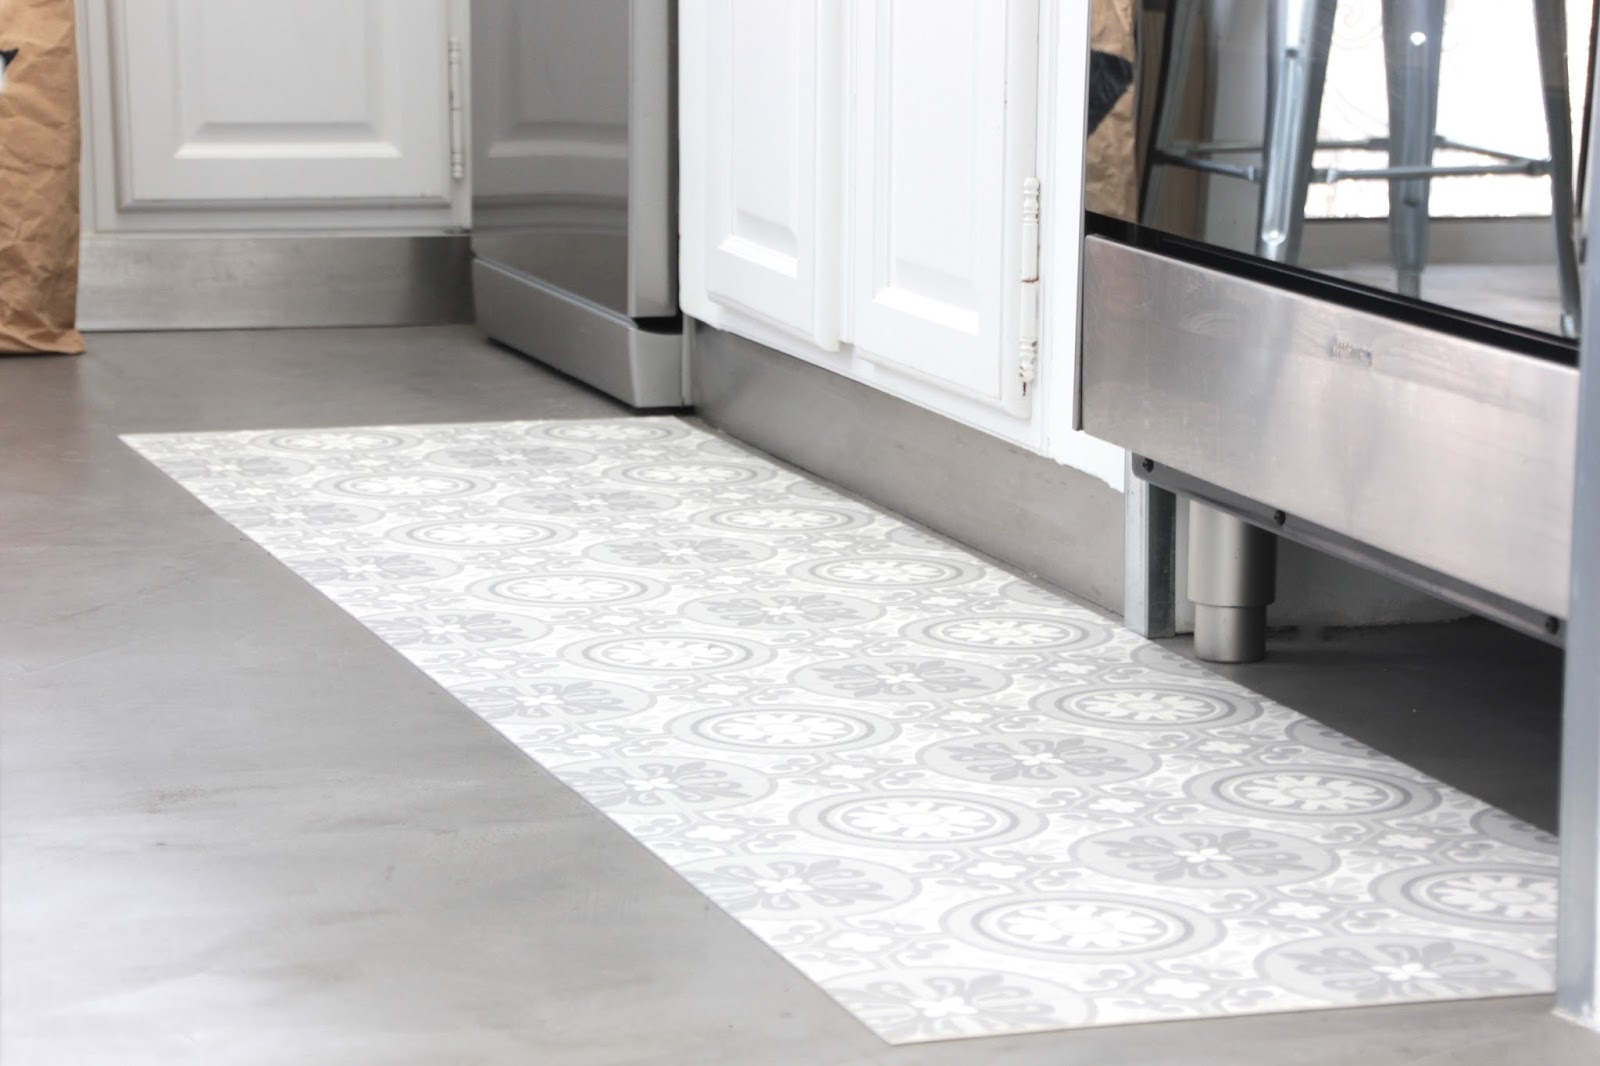 Regardsetmaisons mon tapis vinyle carreaux de ciment diy for Tapis pvc carreaux de ciment